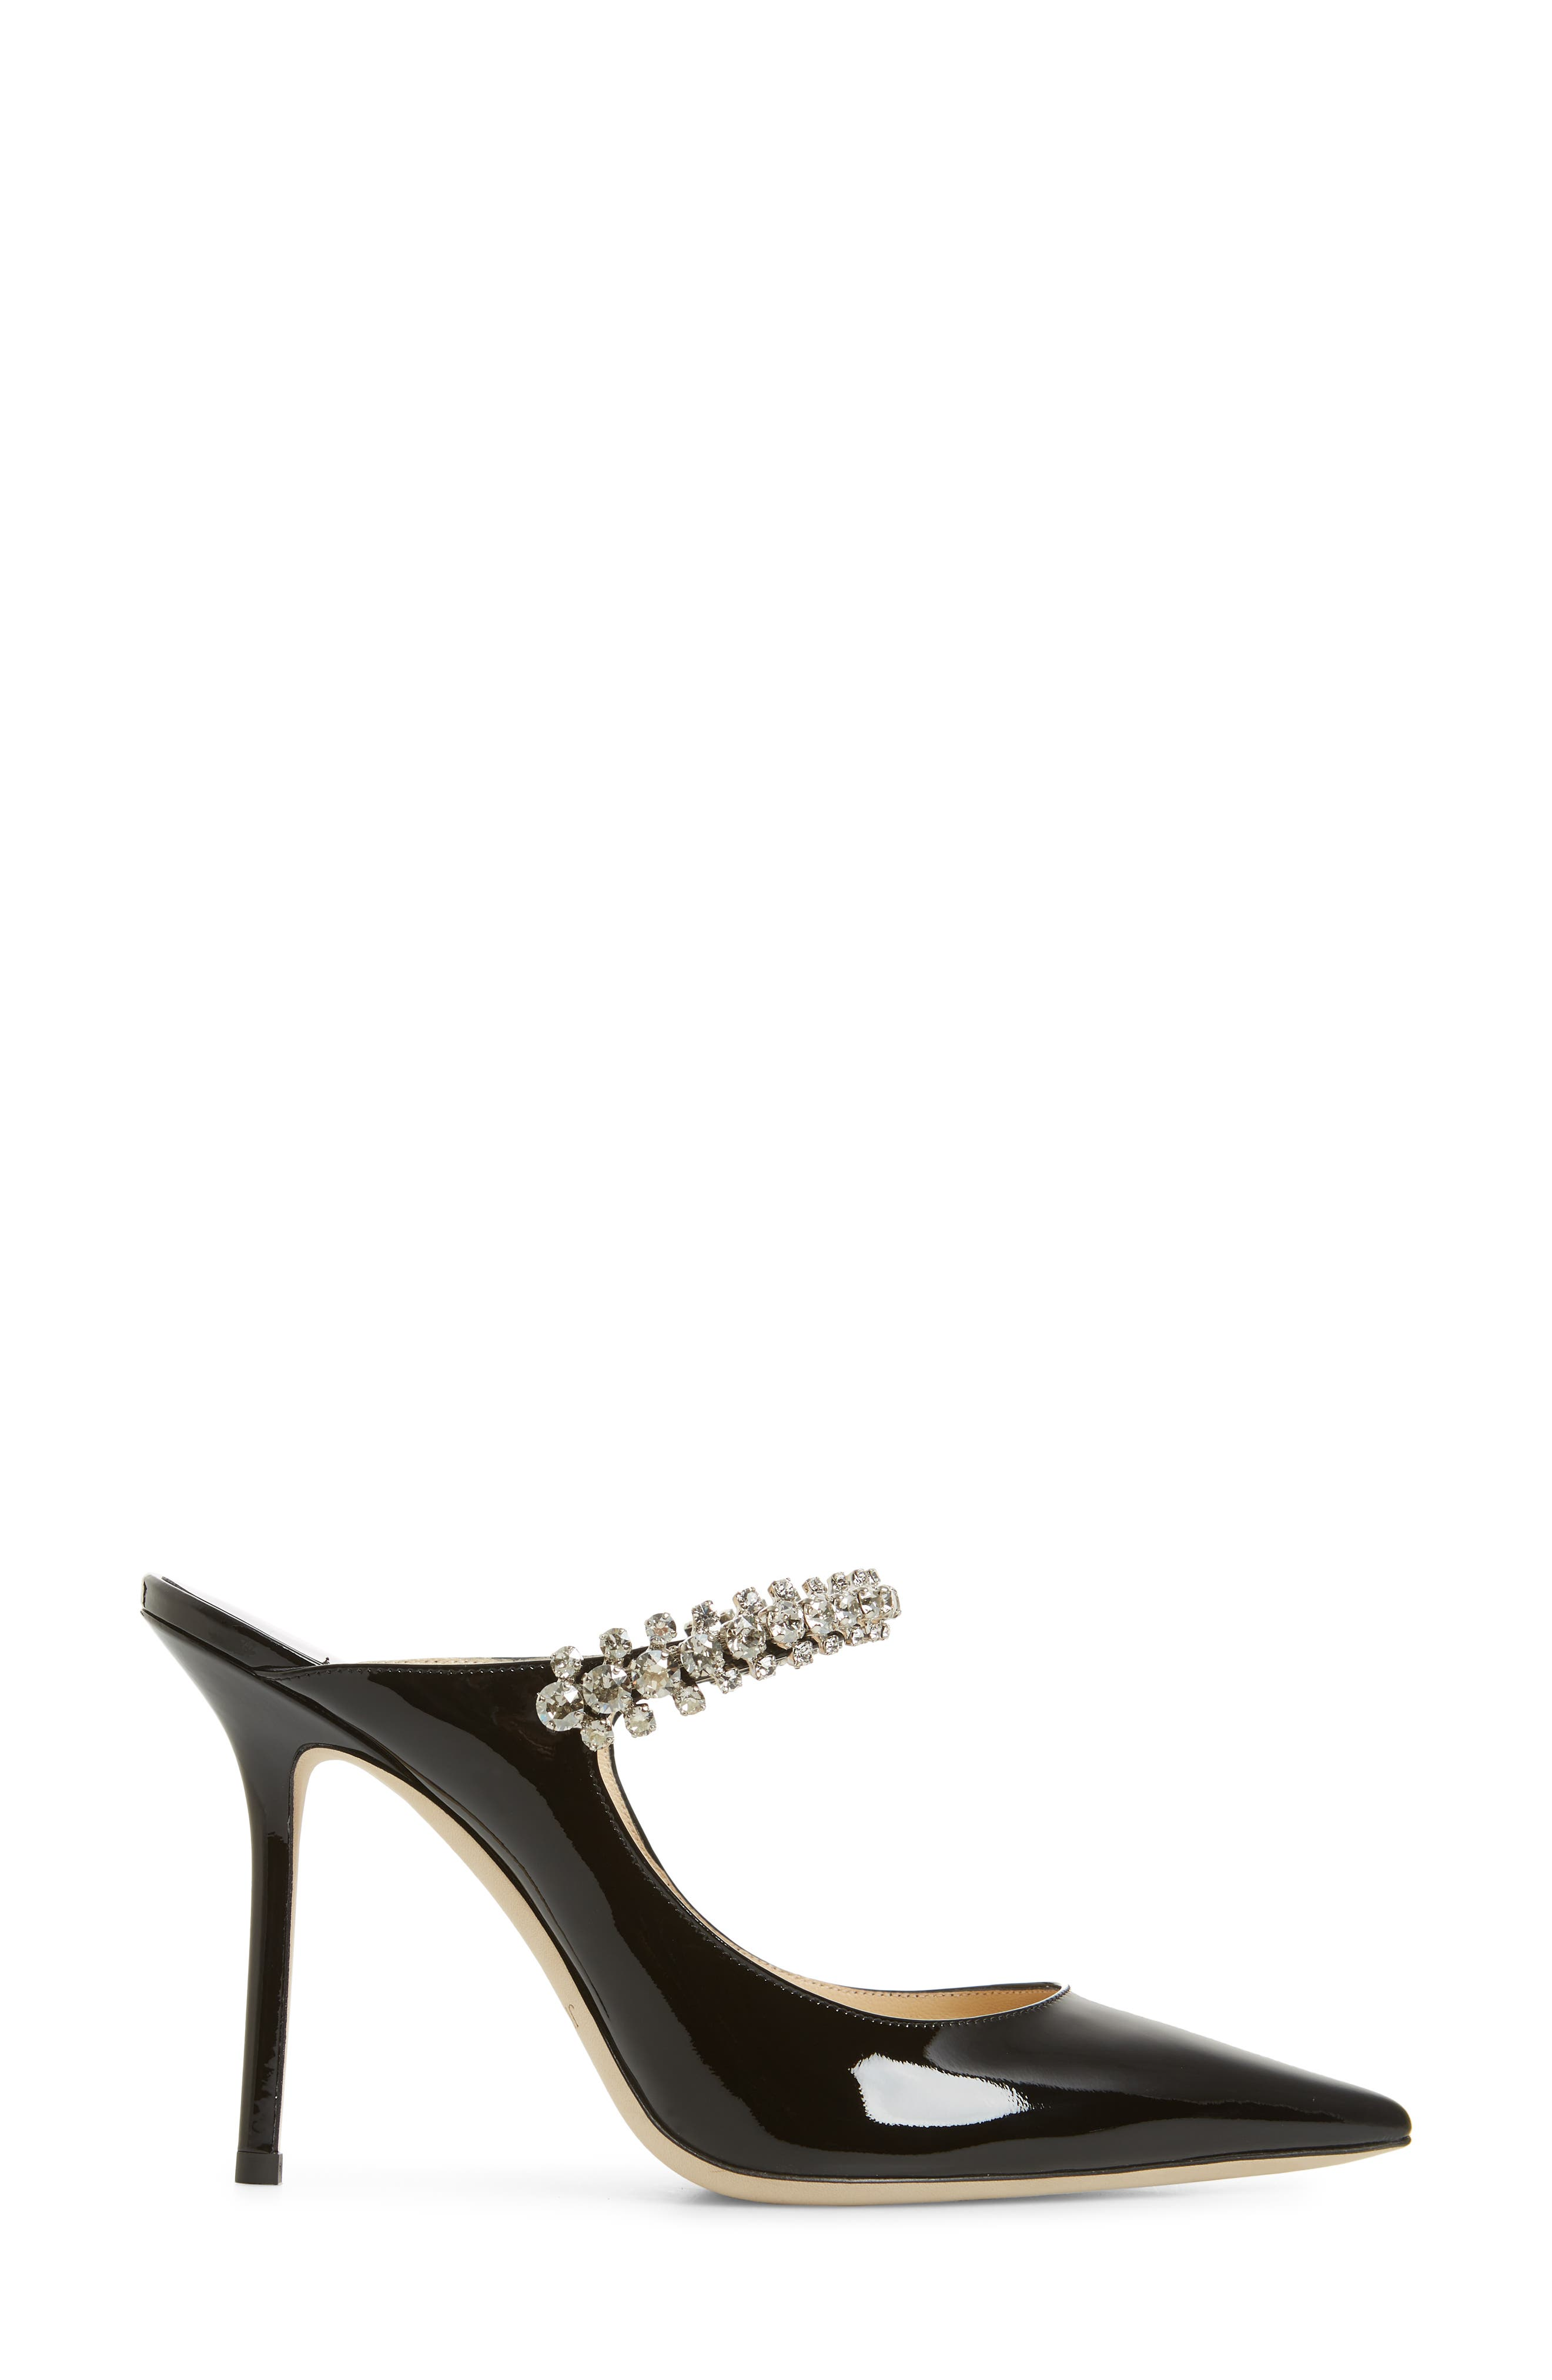 JIMMY CHOO, Embellished Mule, Alternate thumbnail 3, color, BLACK